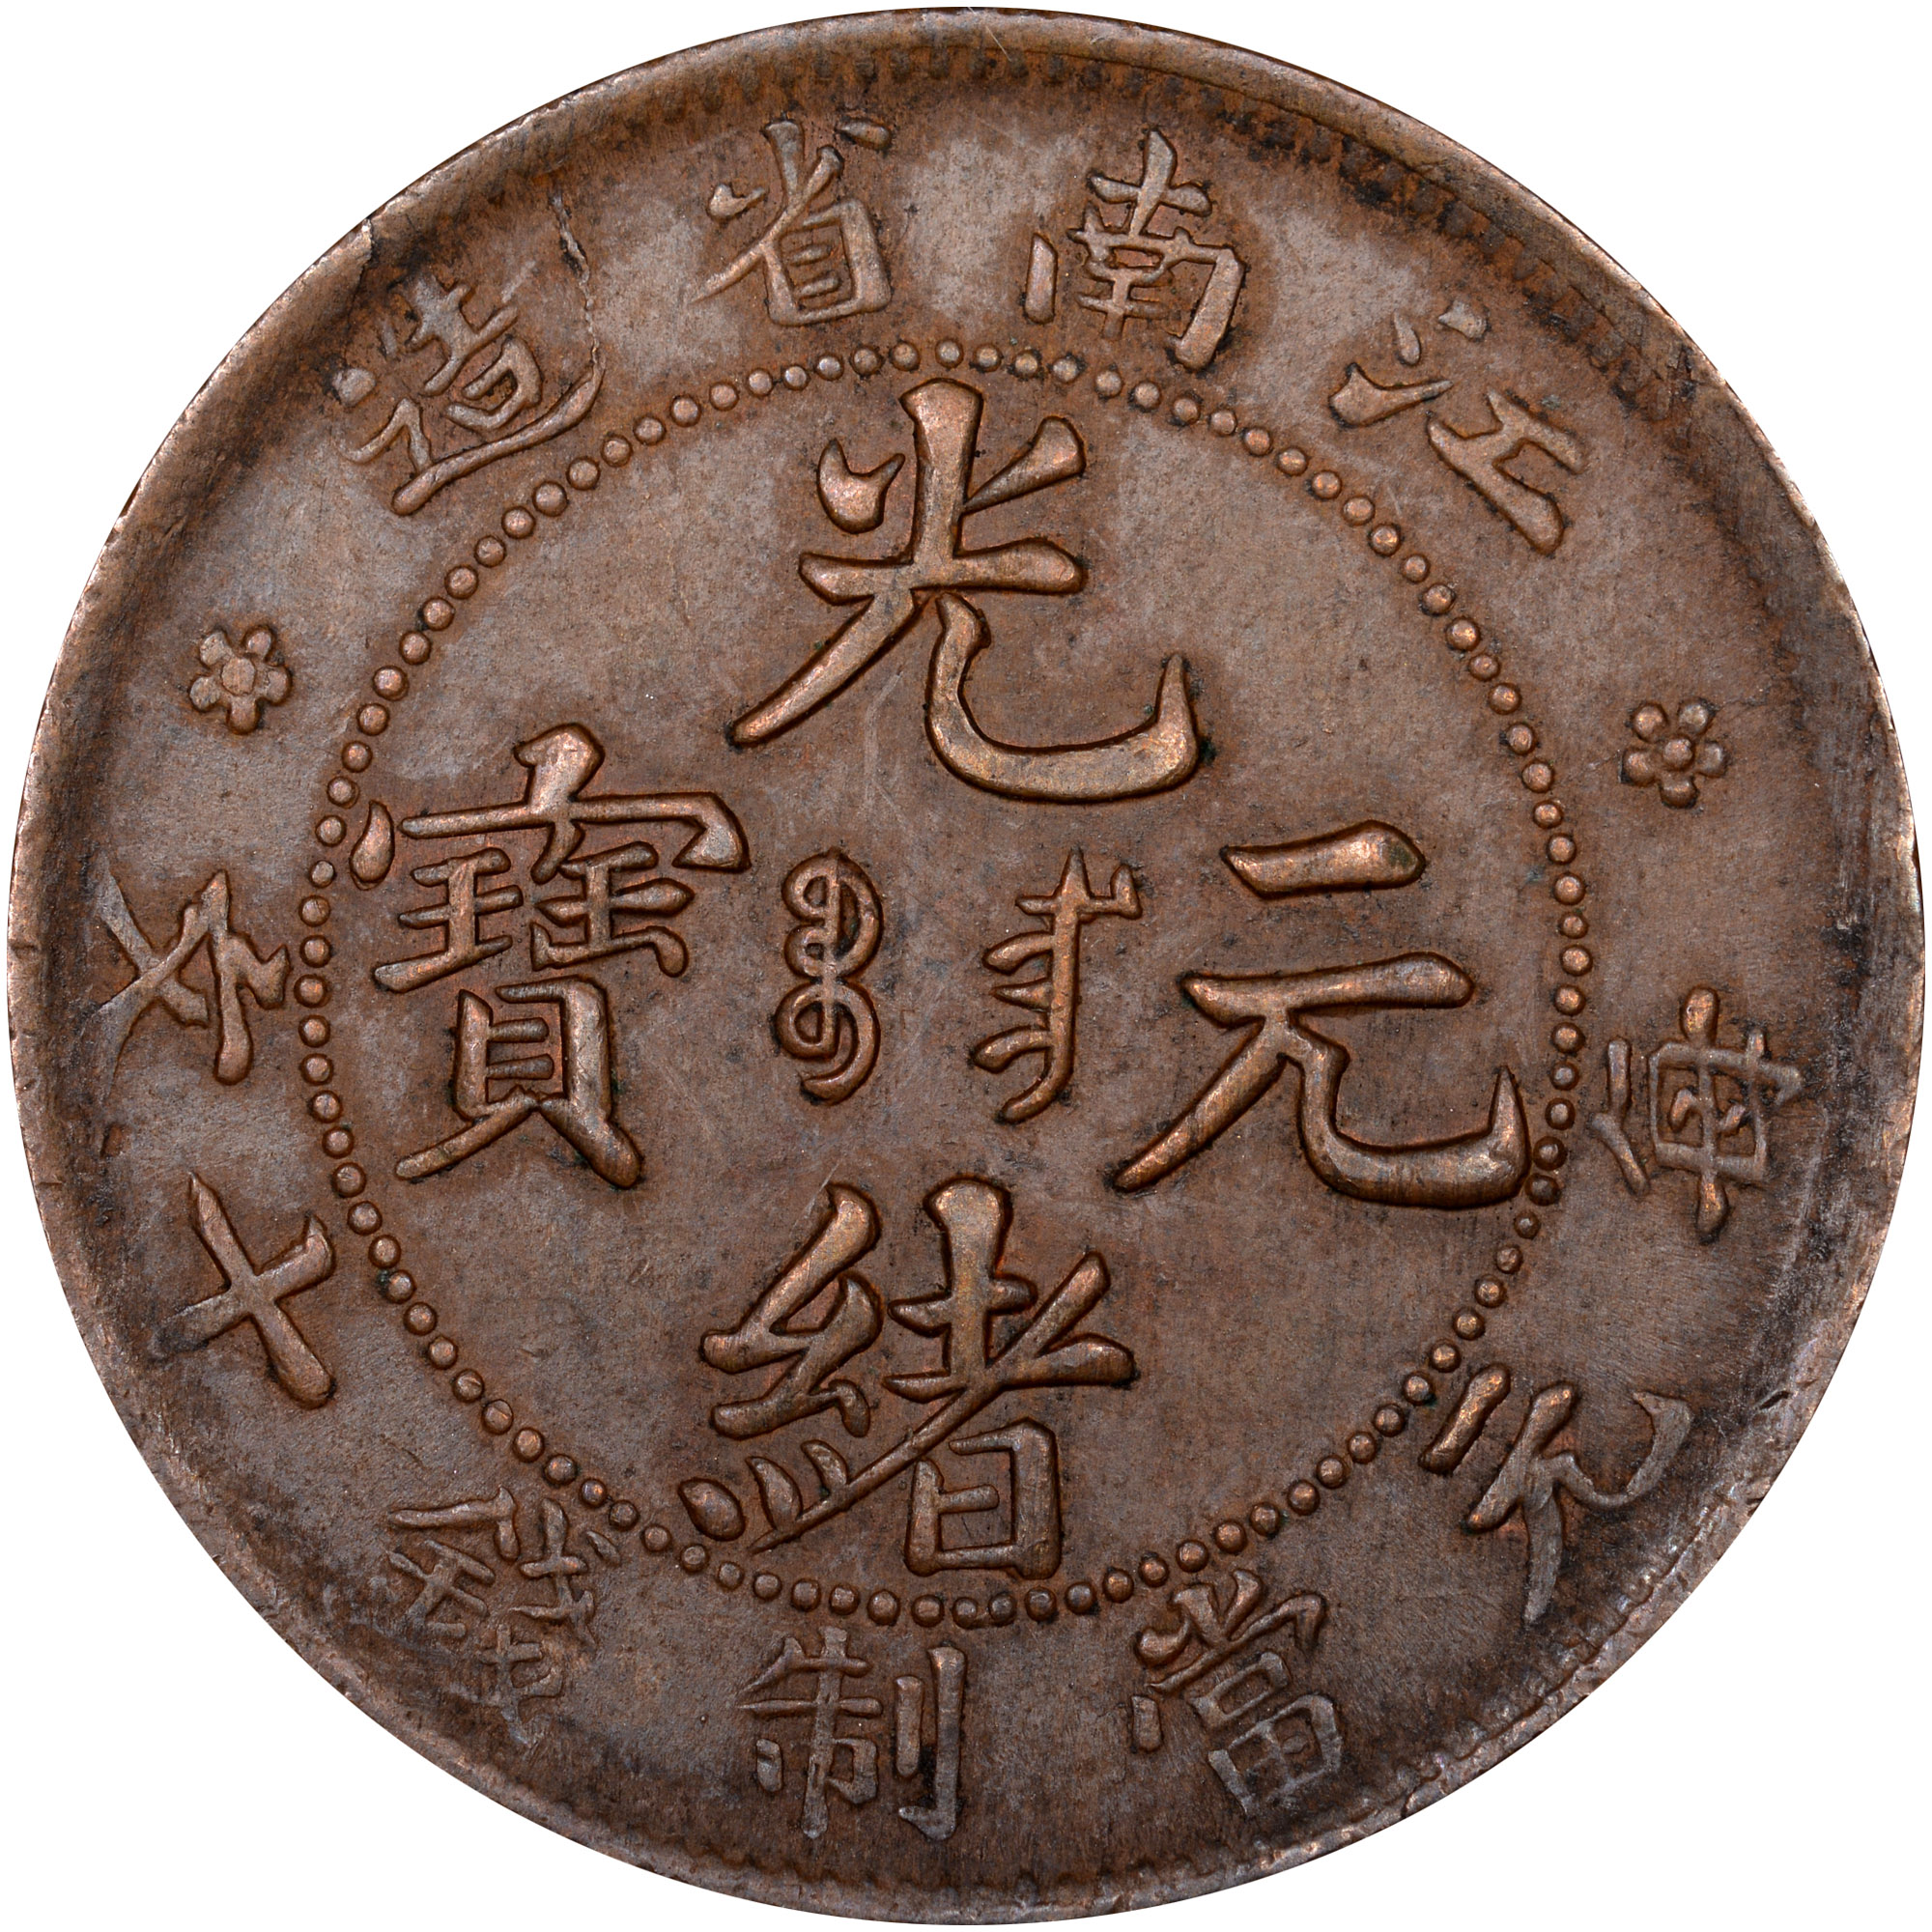 1902 China ANHWEI PROVINCE 10 Cash obverse